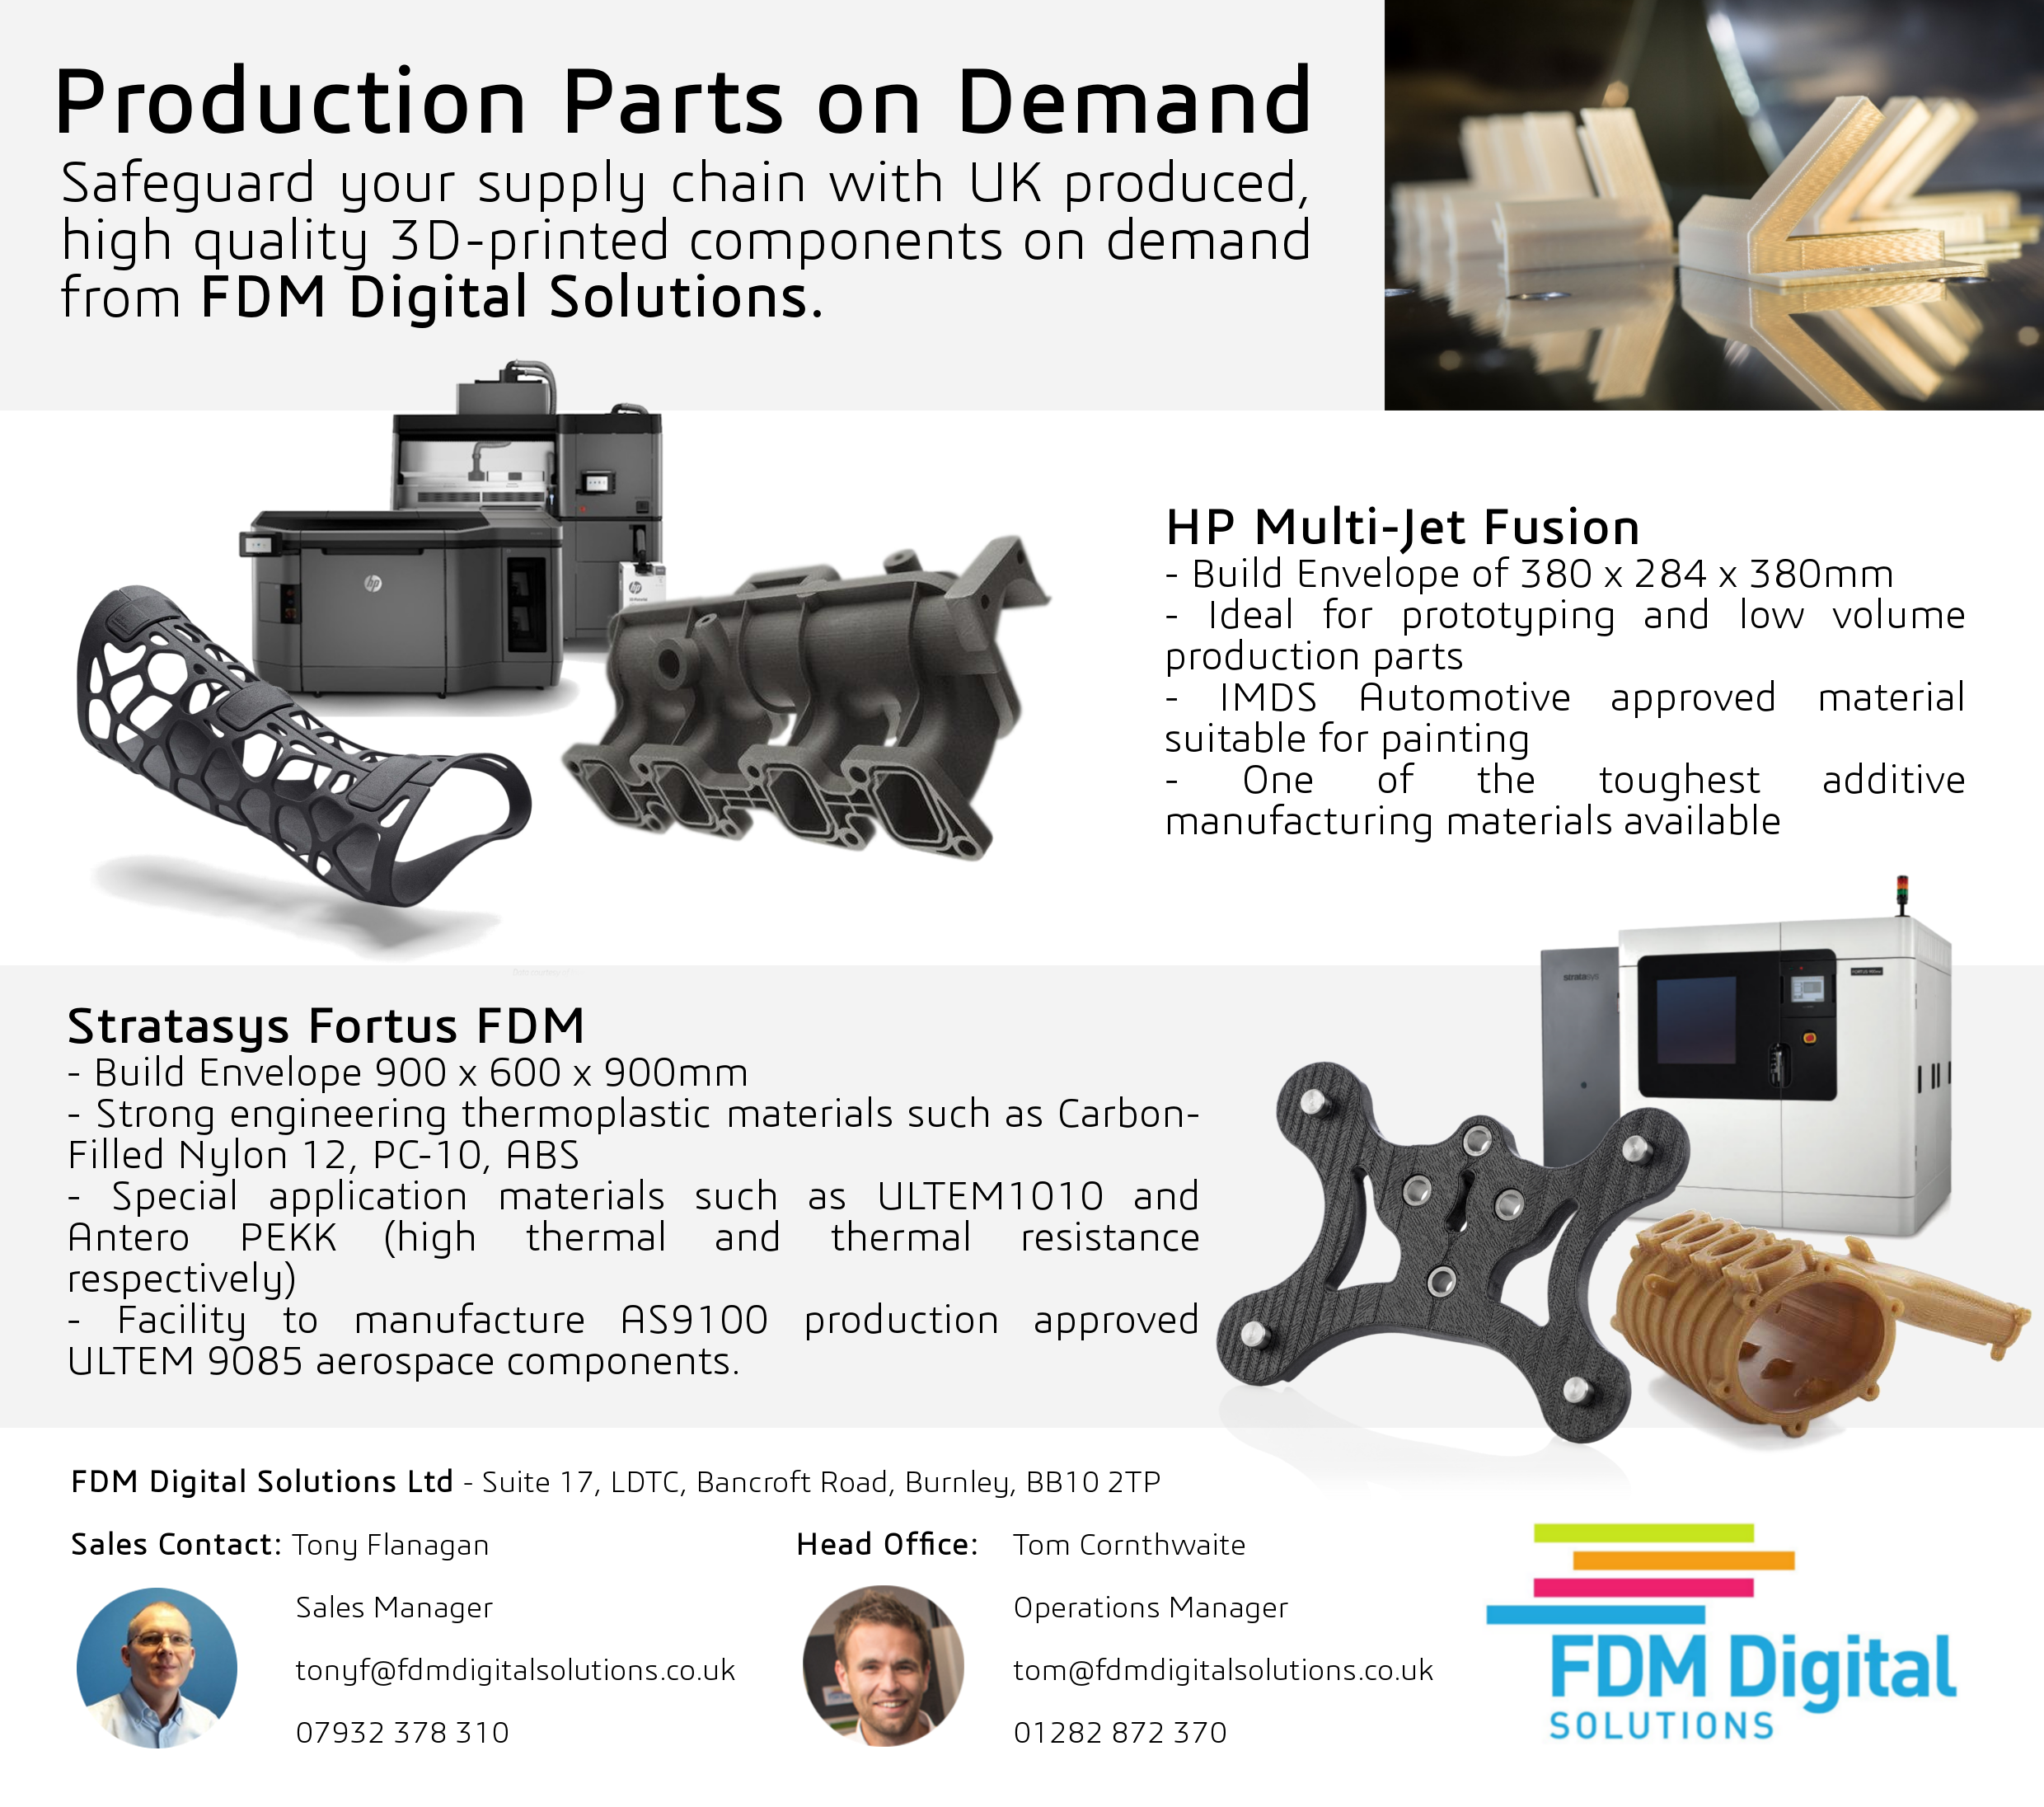 production parts on demand